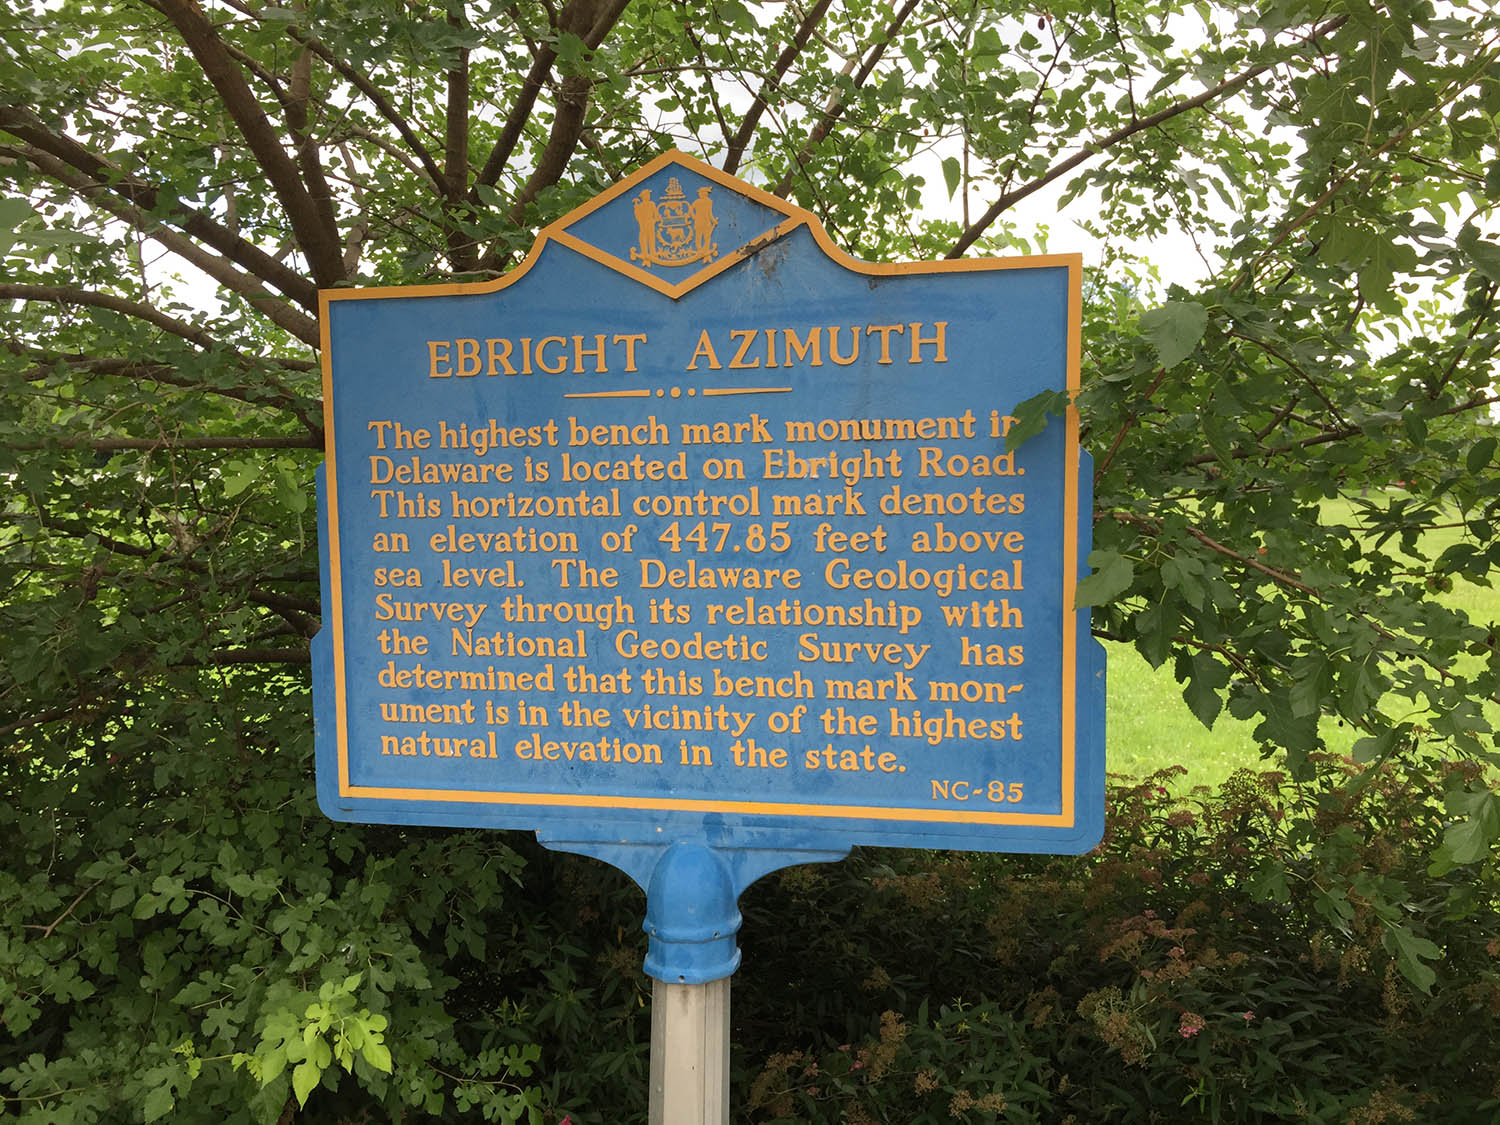 Ebright Azimuth, Delaware Highpoint